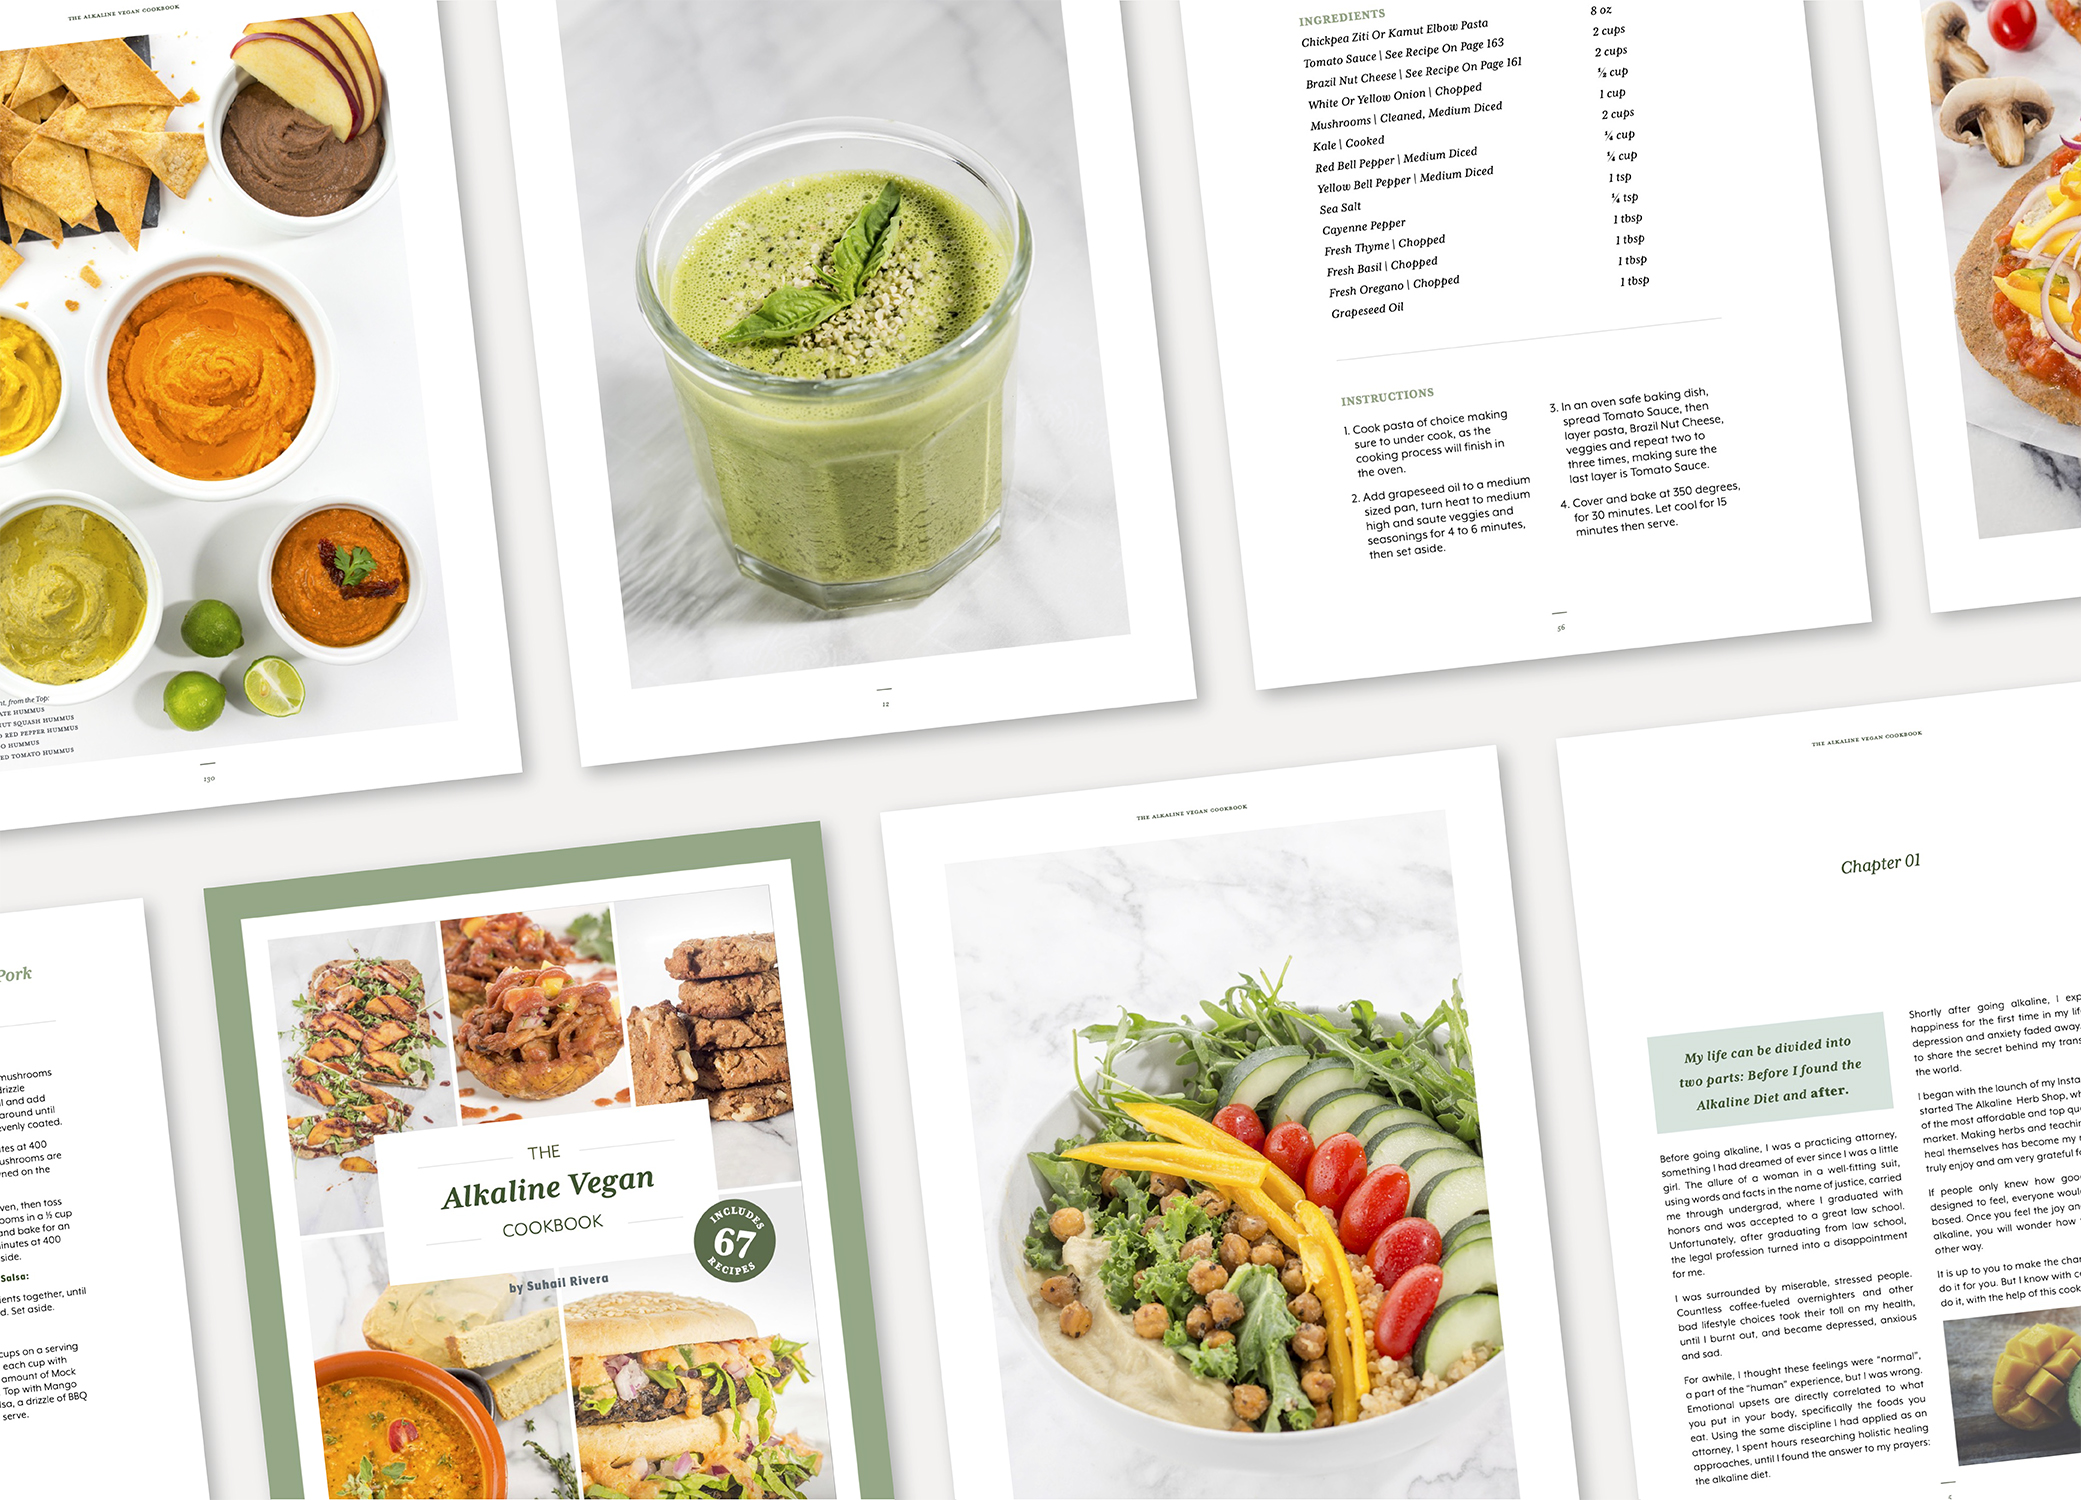 Alkaline Vegan Cookbook branded design in green and white showing 8 recipe pages.